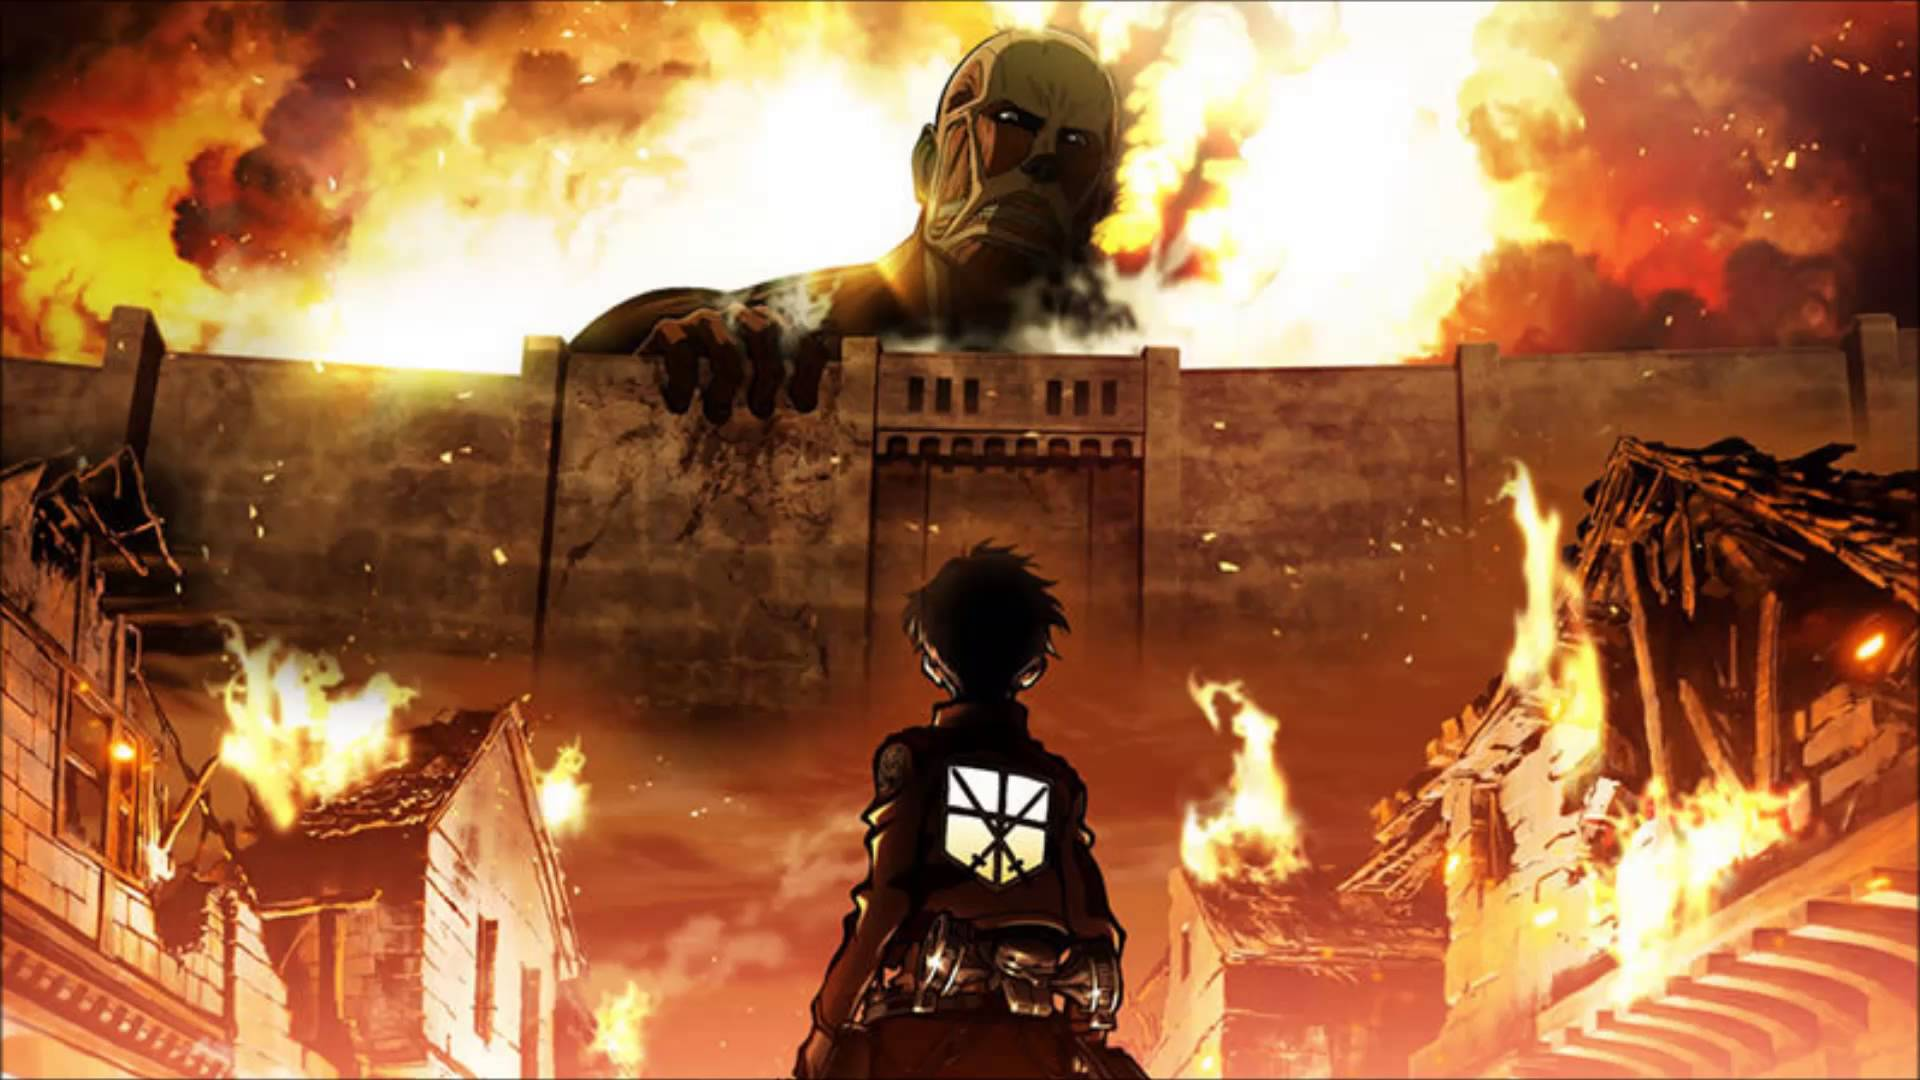 Attack on Titan Season 4 Episode 5 Release Date Delay and Air Time